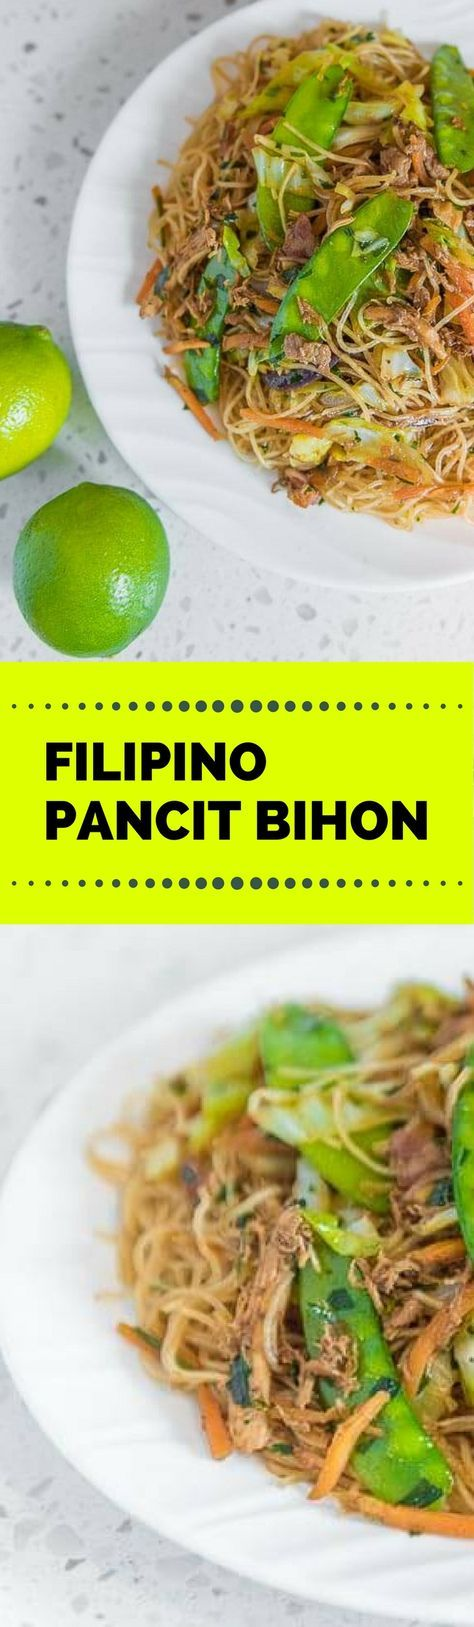 Filipino Pancit Bihon is a noodle dish composed of bihon or rice noodles along with vegetables such as cabbage, carrots, snow peas, and onion. Meats such as shredded chicken and chopped pork are also added. This is best eaten with a condiment of soy sauce and calamansi #pansit #pancit #noodles #Filipinorecipes #pinoyfood #pinoy #Filipino #speedyrecipe #panlasangpinoy #pansit #pancit